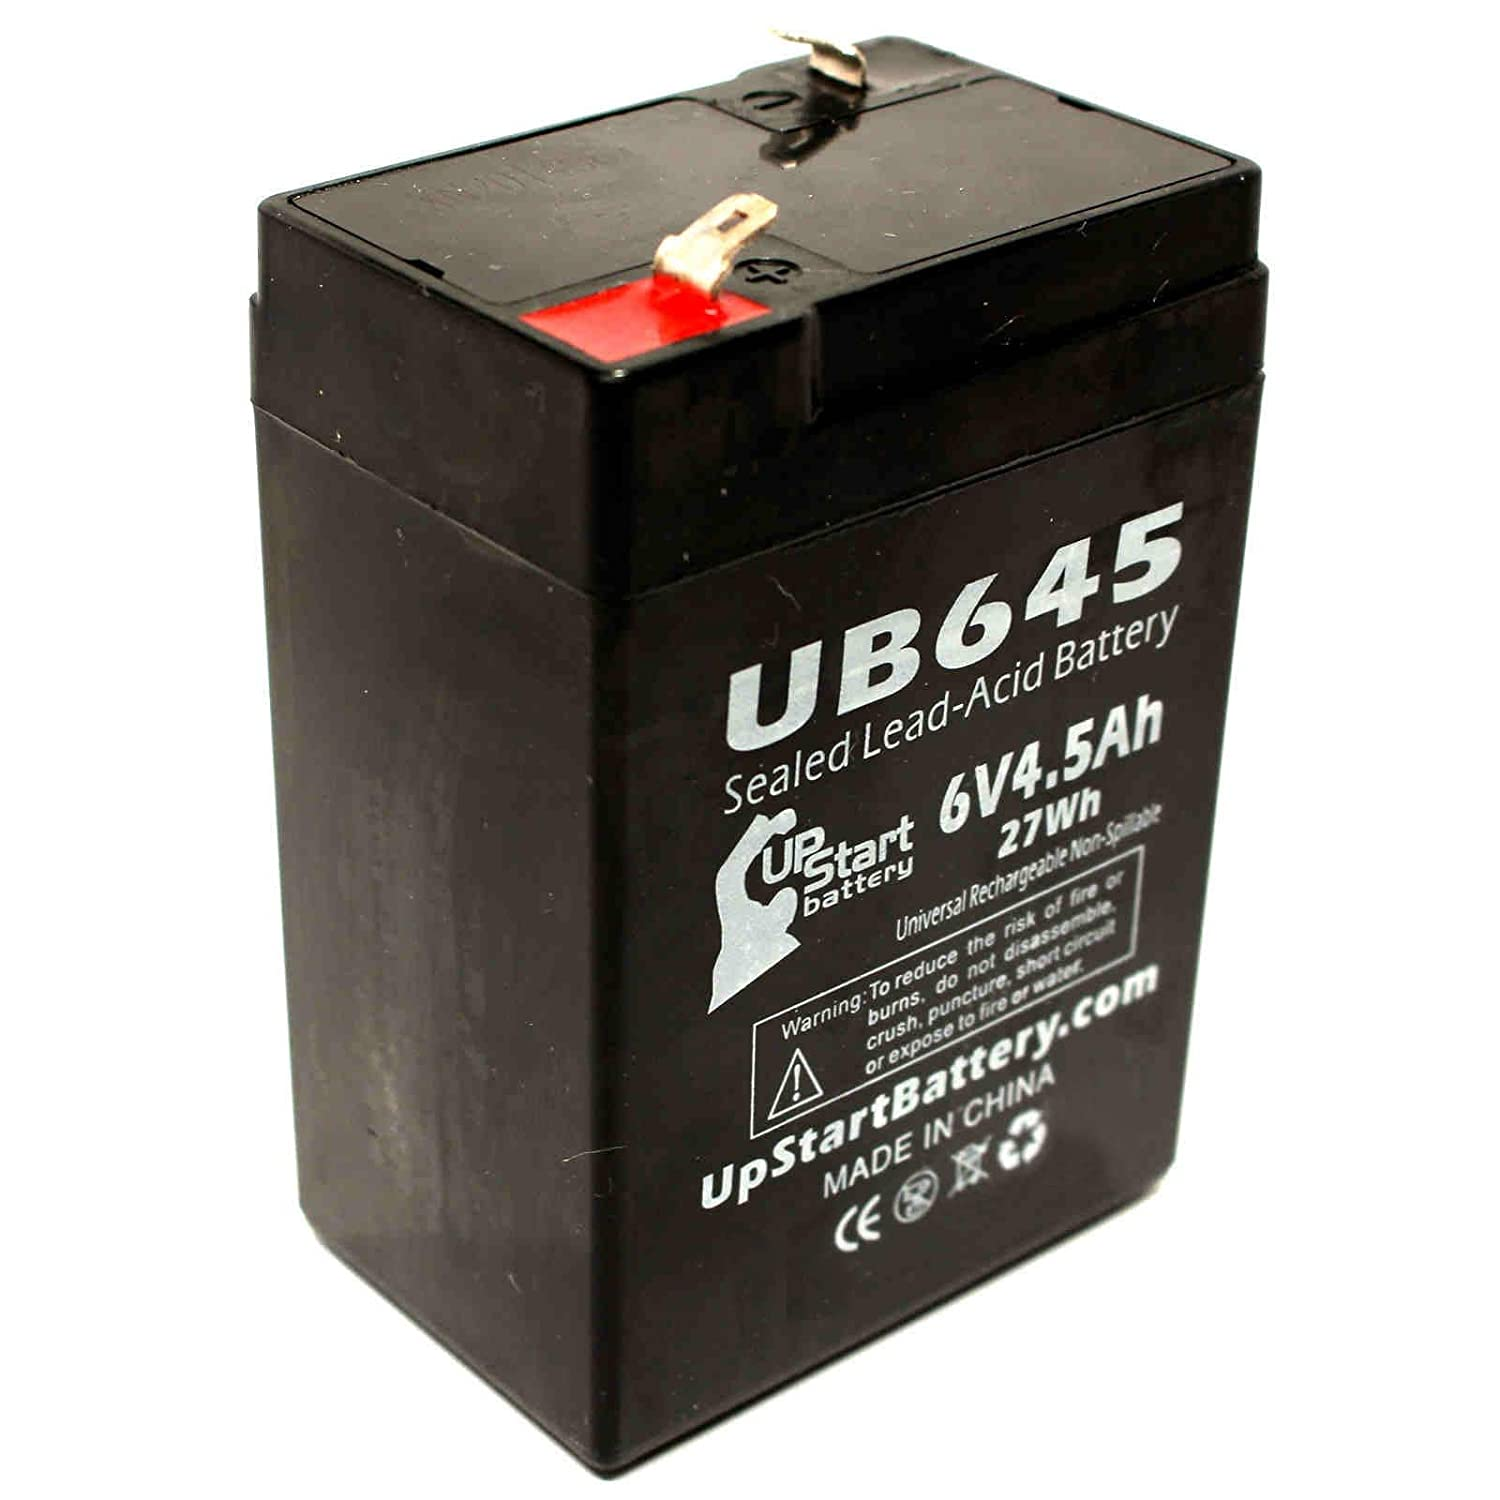 Diamec DM64 Battery - Replacement UB645 Universal Sealed Lead Acid Battery (6V, 4.5Ah, 4500mAh, F1 Terminal, AGM, SLA) - Includes TWO F1 to F2 Terminal Adapters Upstart Battery UB645-DL147